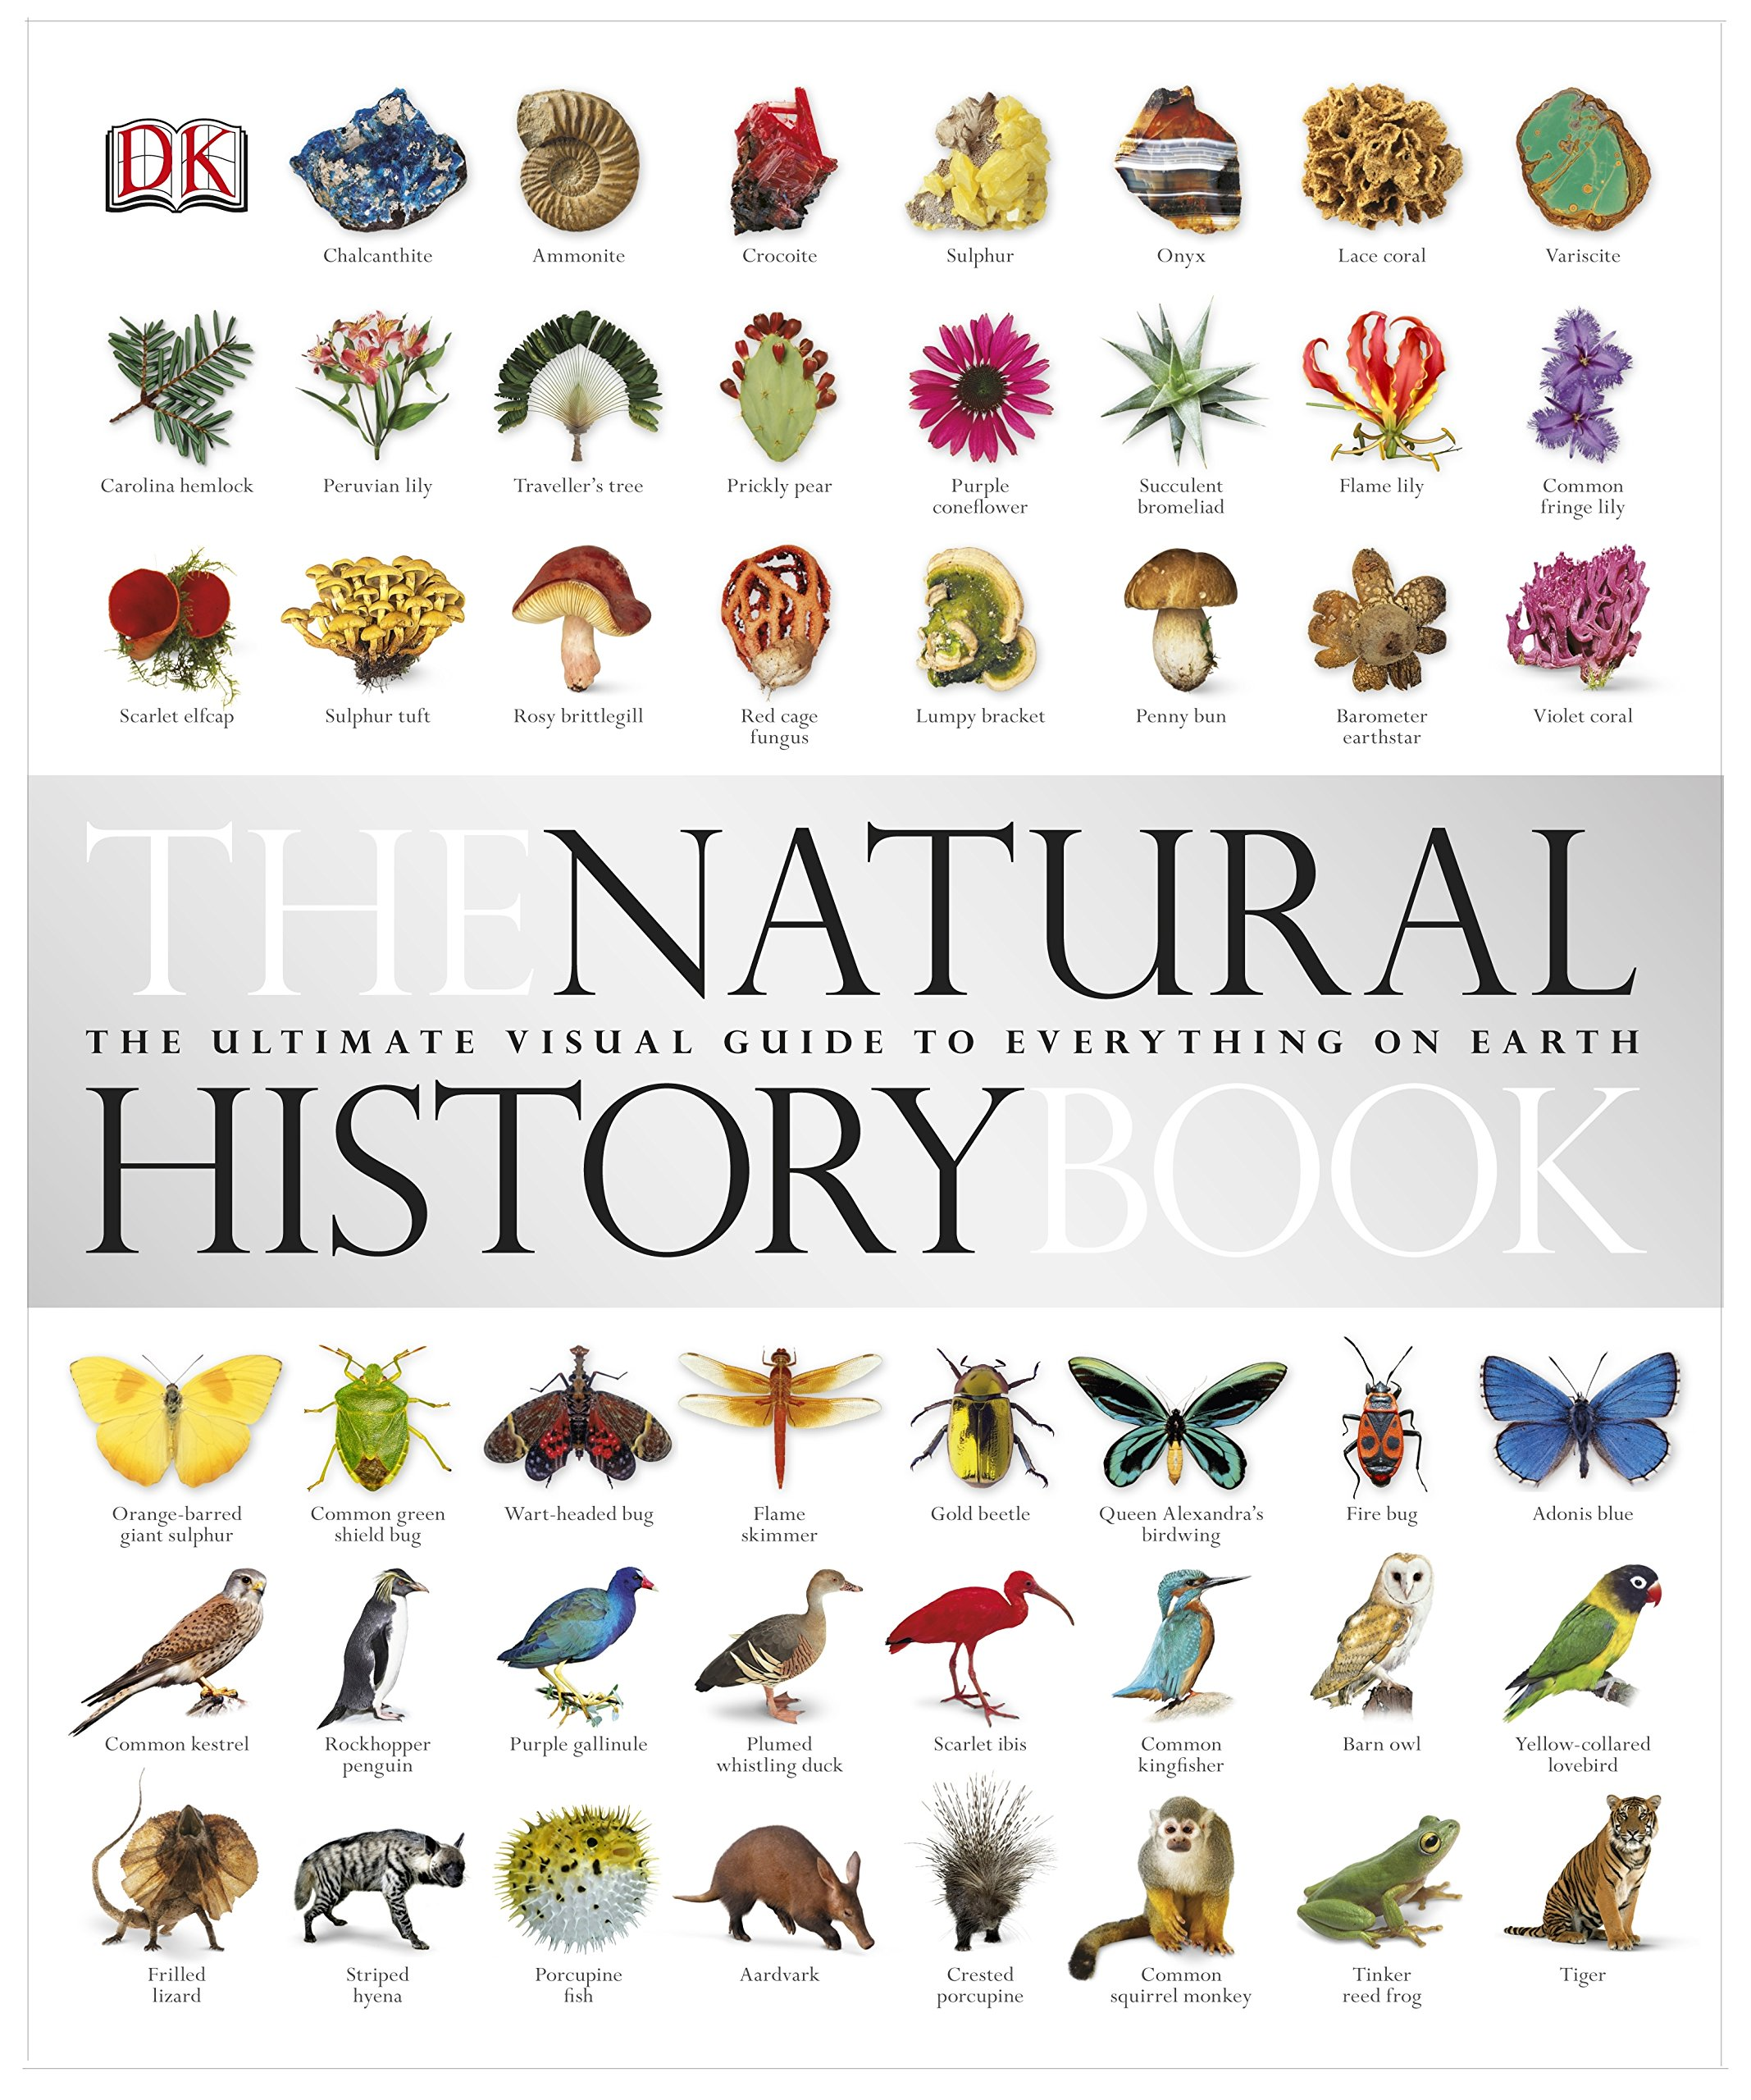 the-natural-history-book-the-ultimate-visual-guide-to-everything-on-earth